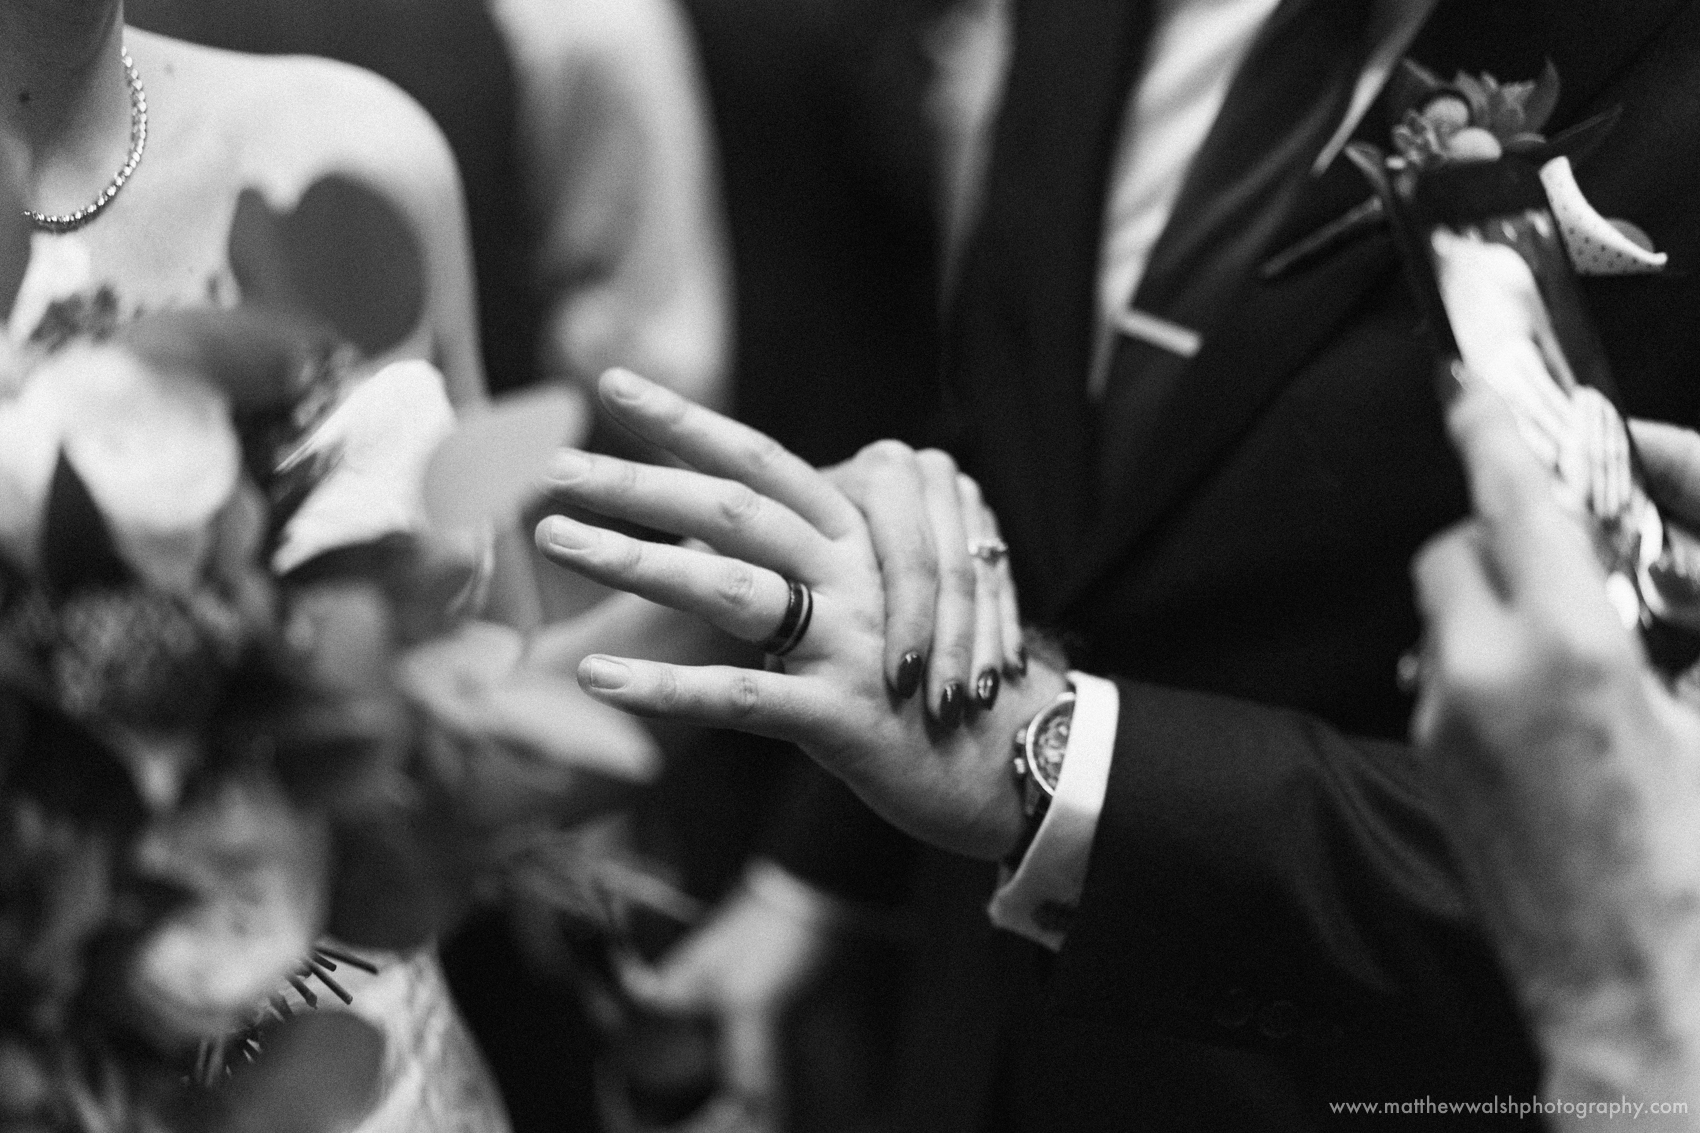 The newly wed couple show off their wedding rings to an emotional yet happy guest